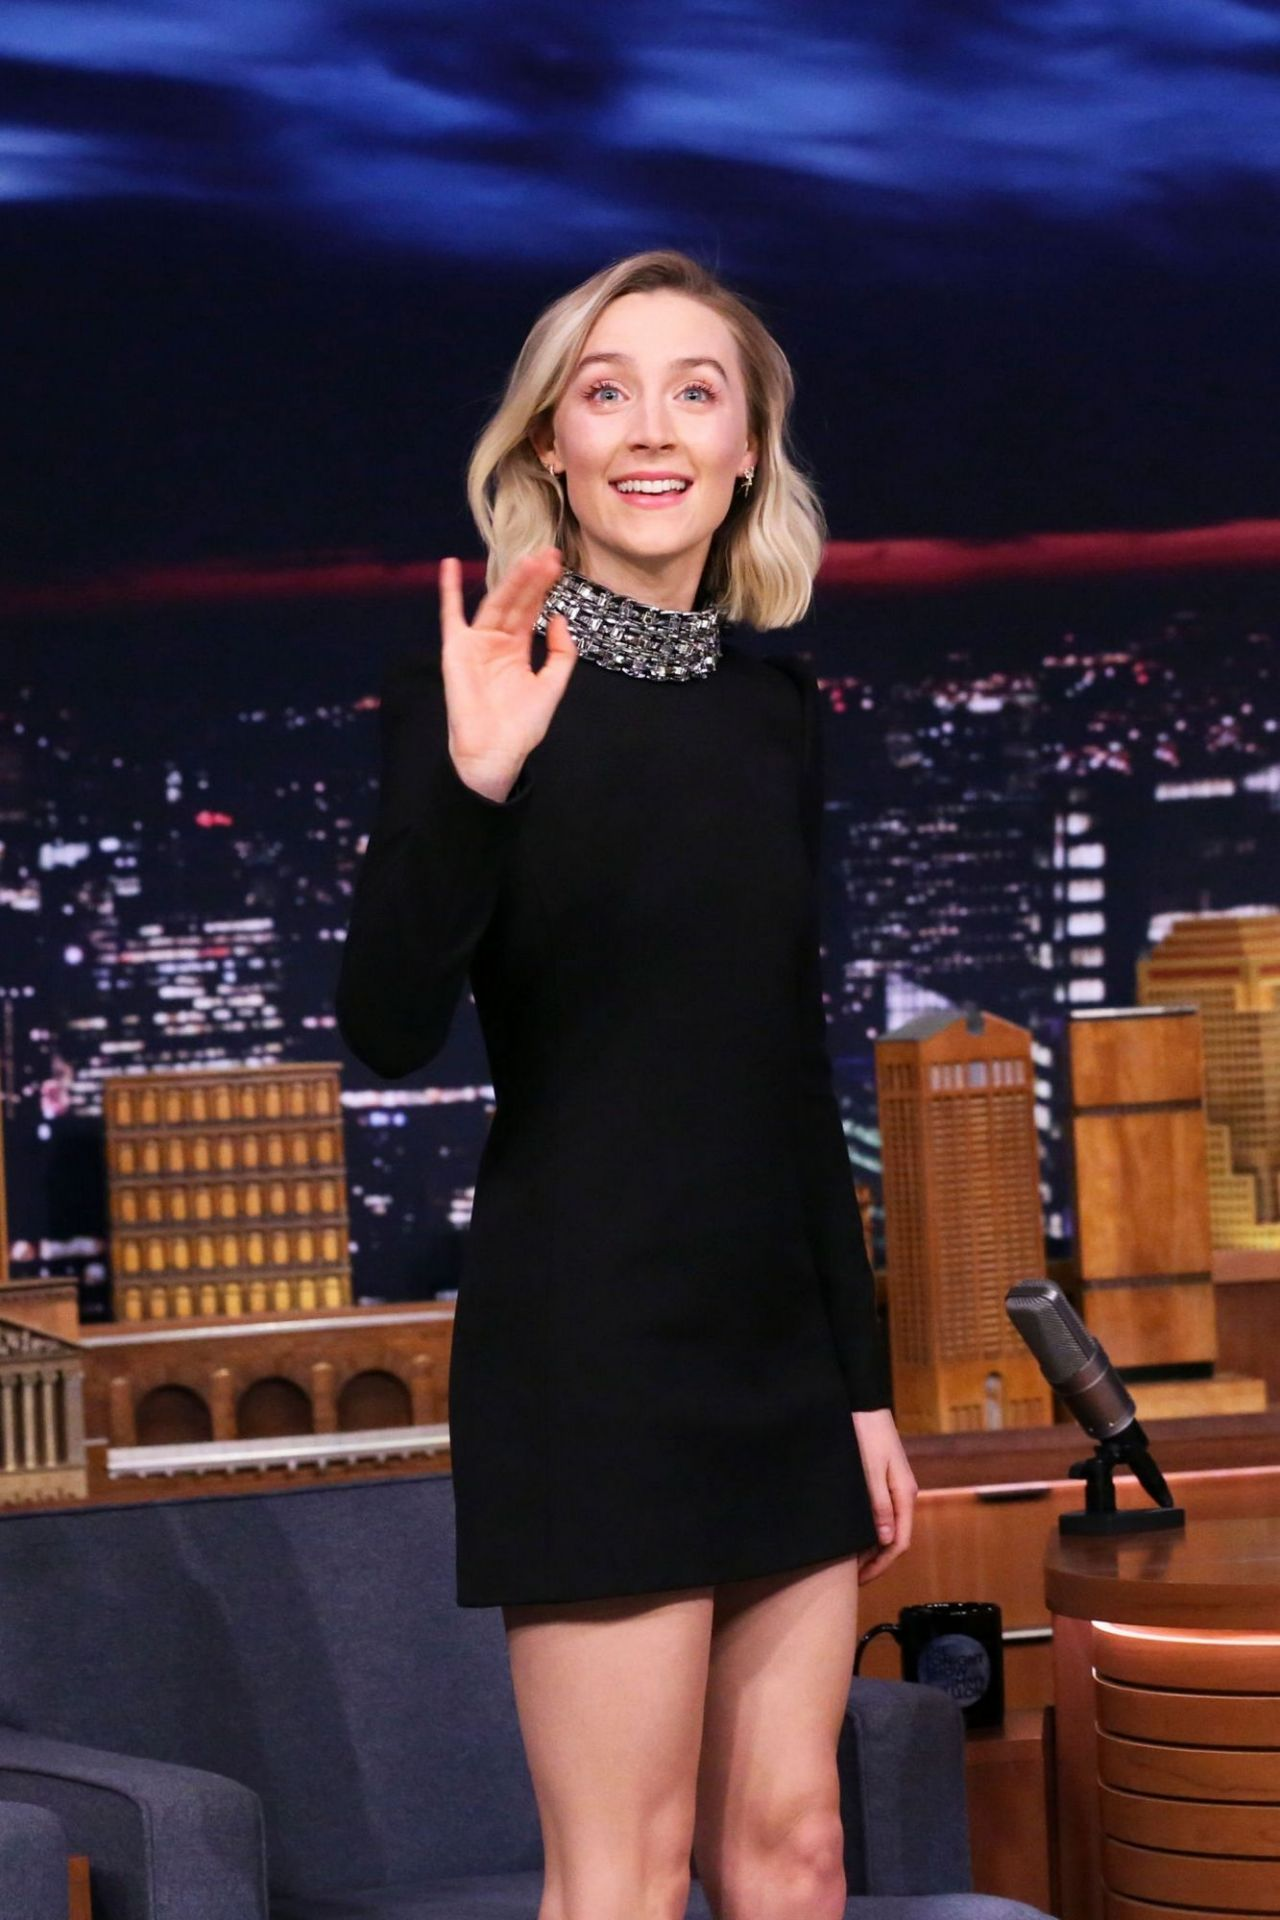 https://celebmafia.com/wp-content/uploads/2018/12/saoirse-ronan-tonight-show-starring-jimmy-fallon-in-ny-12-04-2018-1.jpg